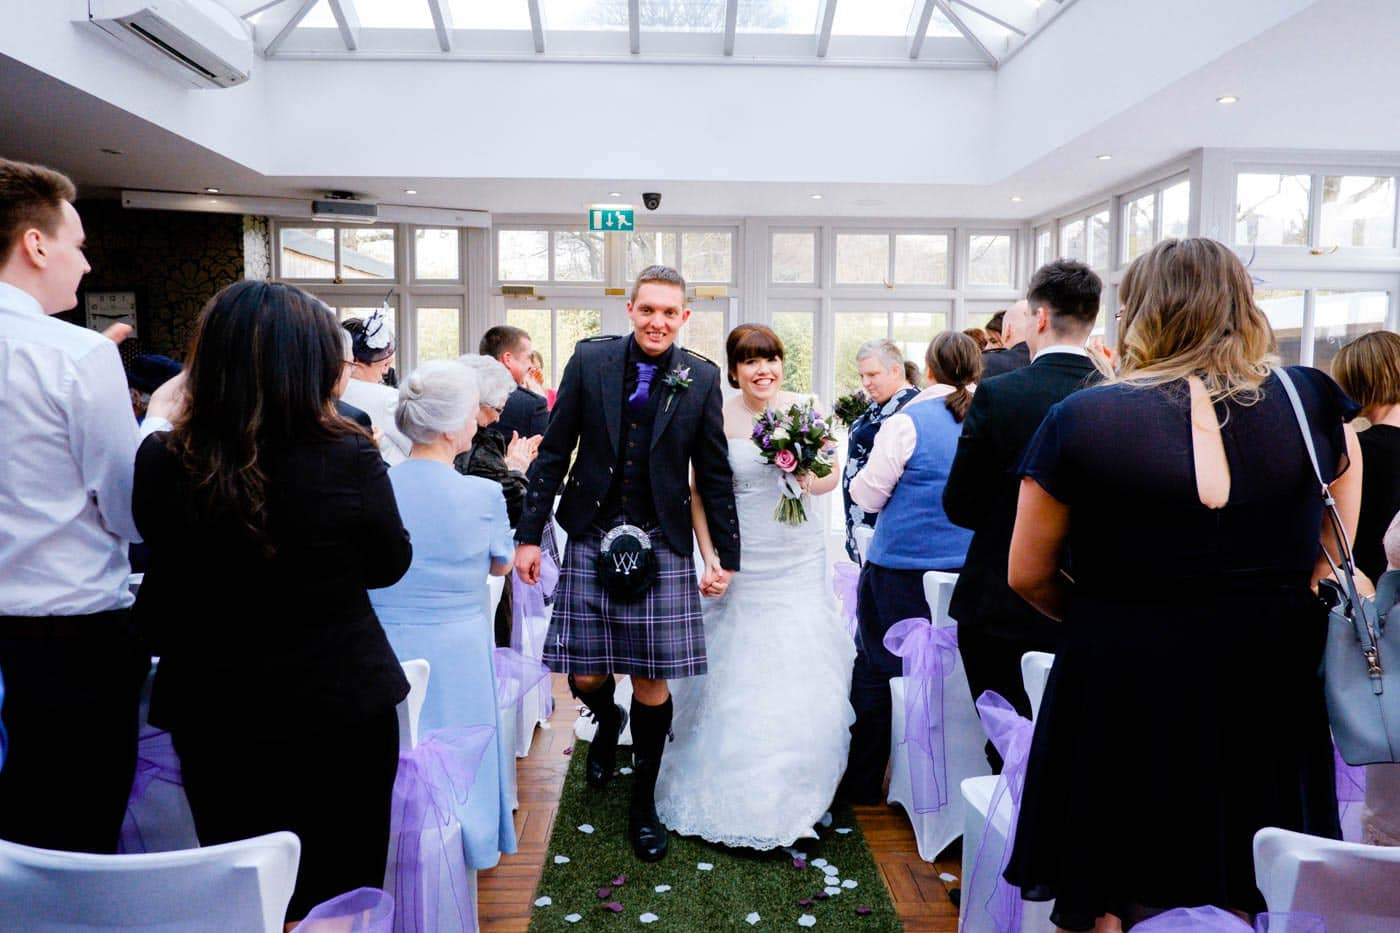 Scottish bride and groom walking down the aisle at Broadoaks Country House